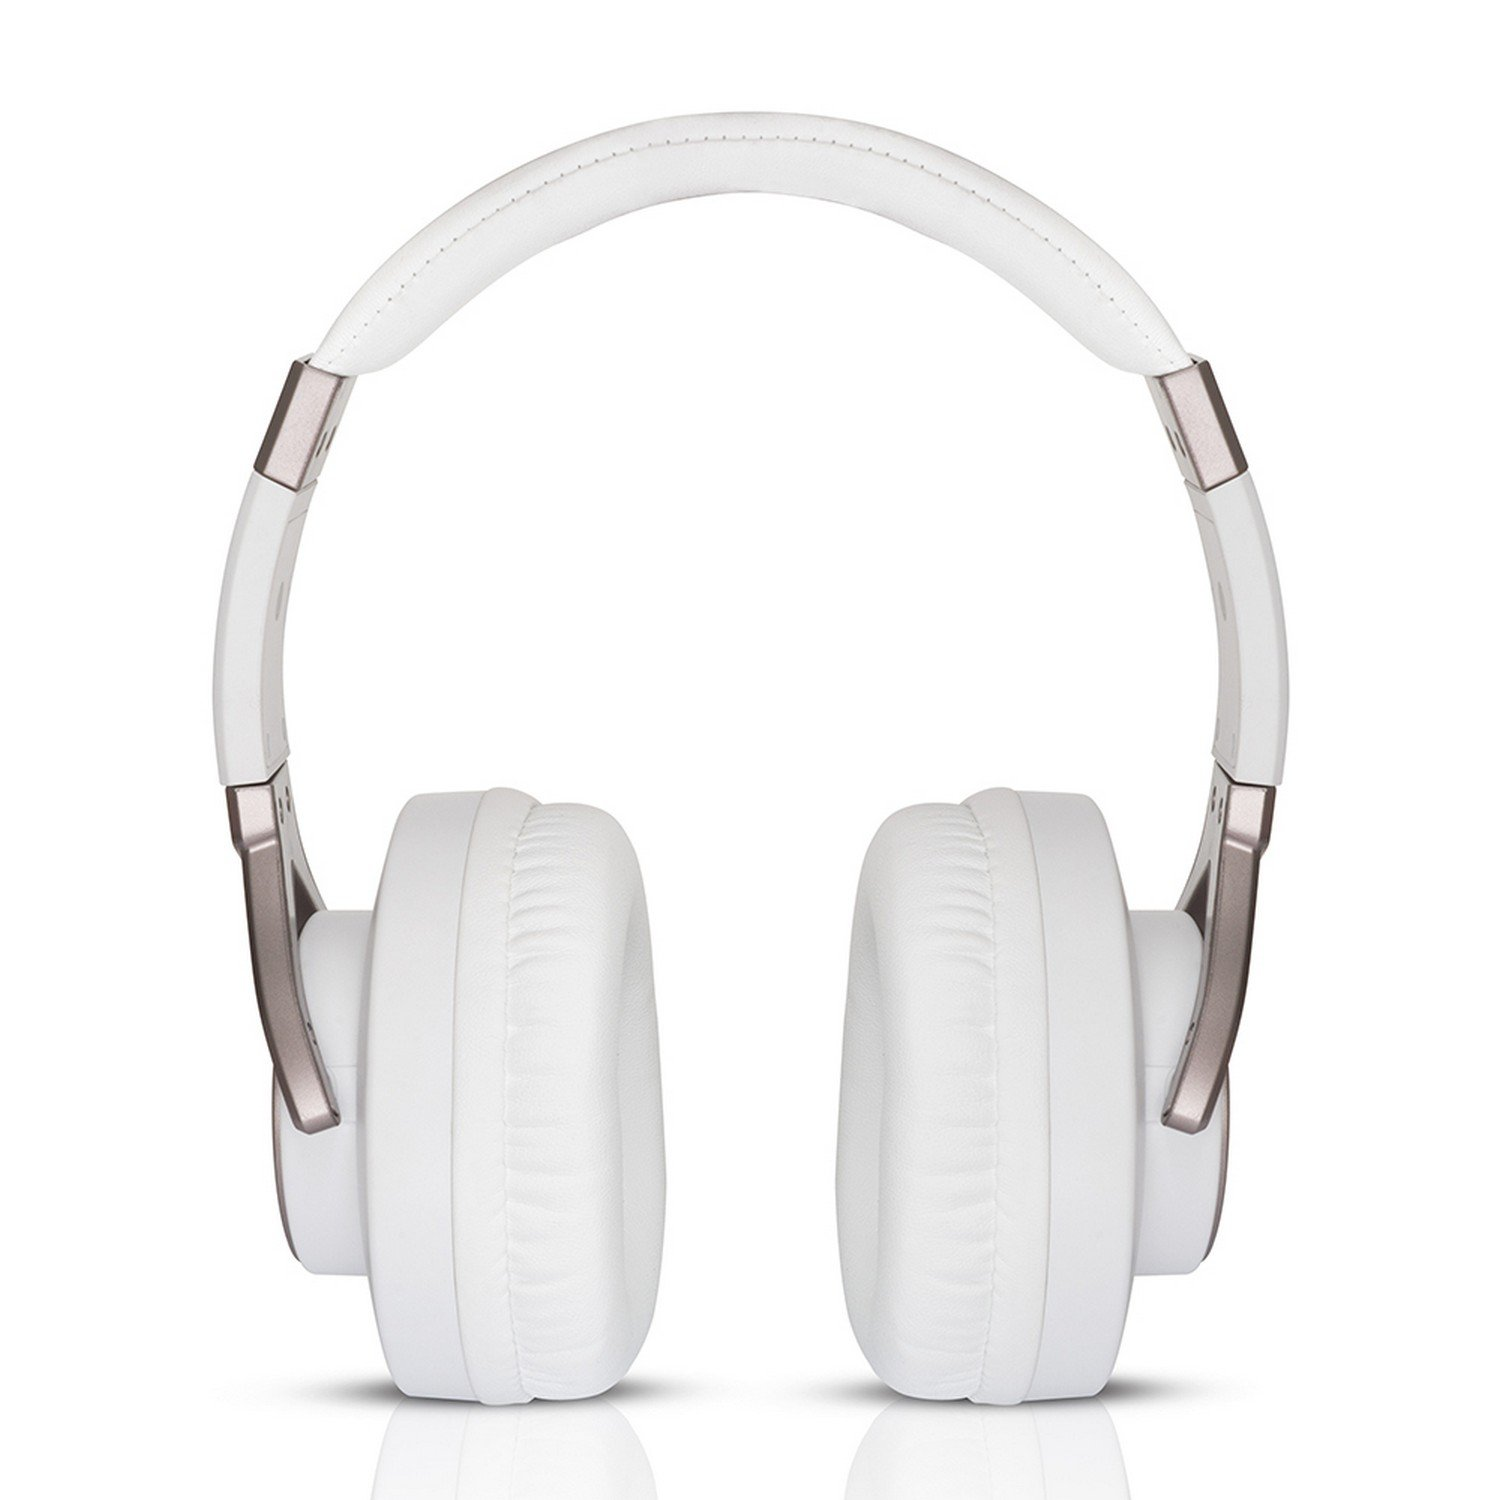 Motorola Pulse Max Over Ear Wired Headphones With Alexa White Buy Online In Cayman Islands Motorola Products In Cayman Islands See Prices Reviews And Free Delivery Over Ci 60 Desertcart